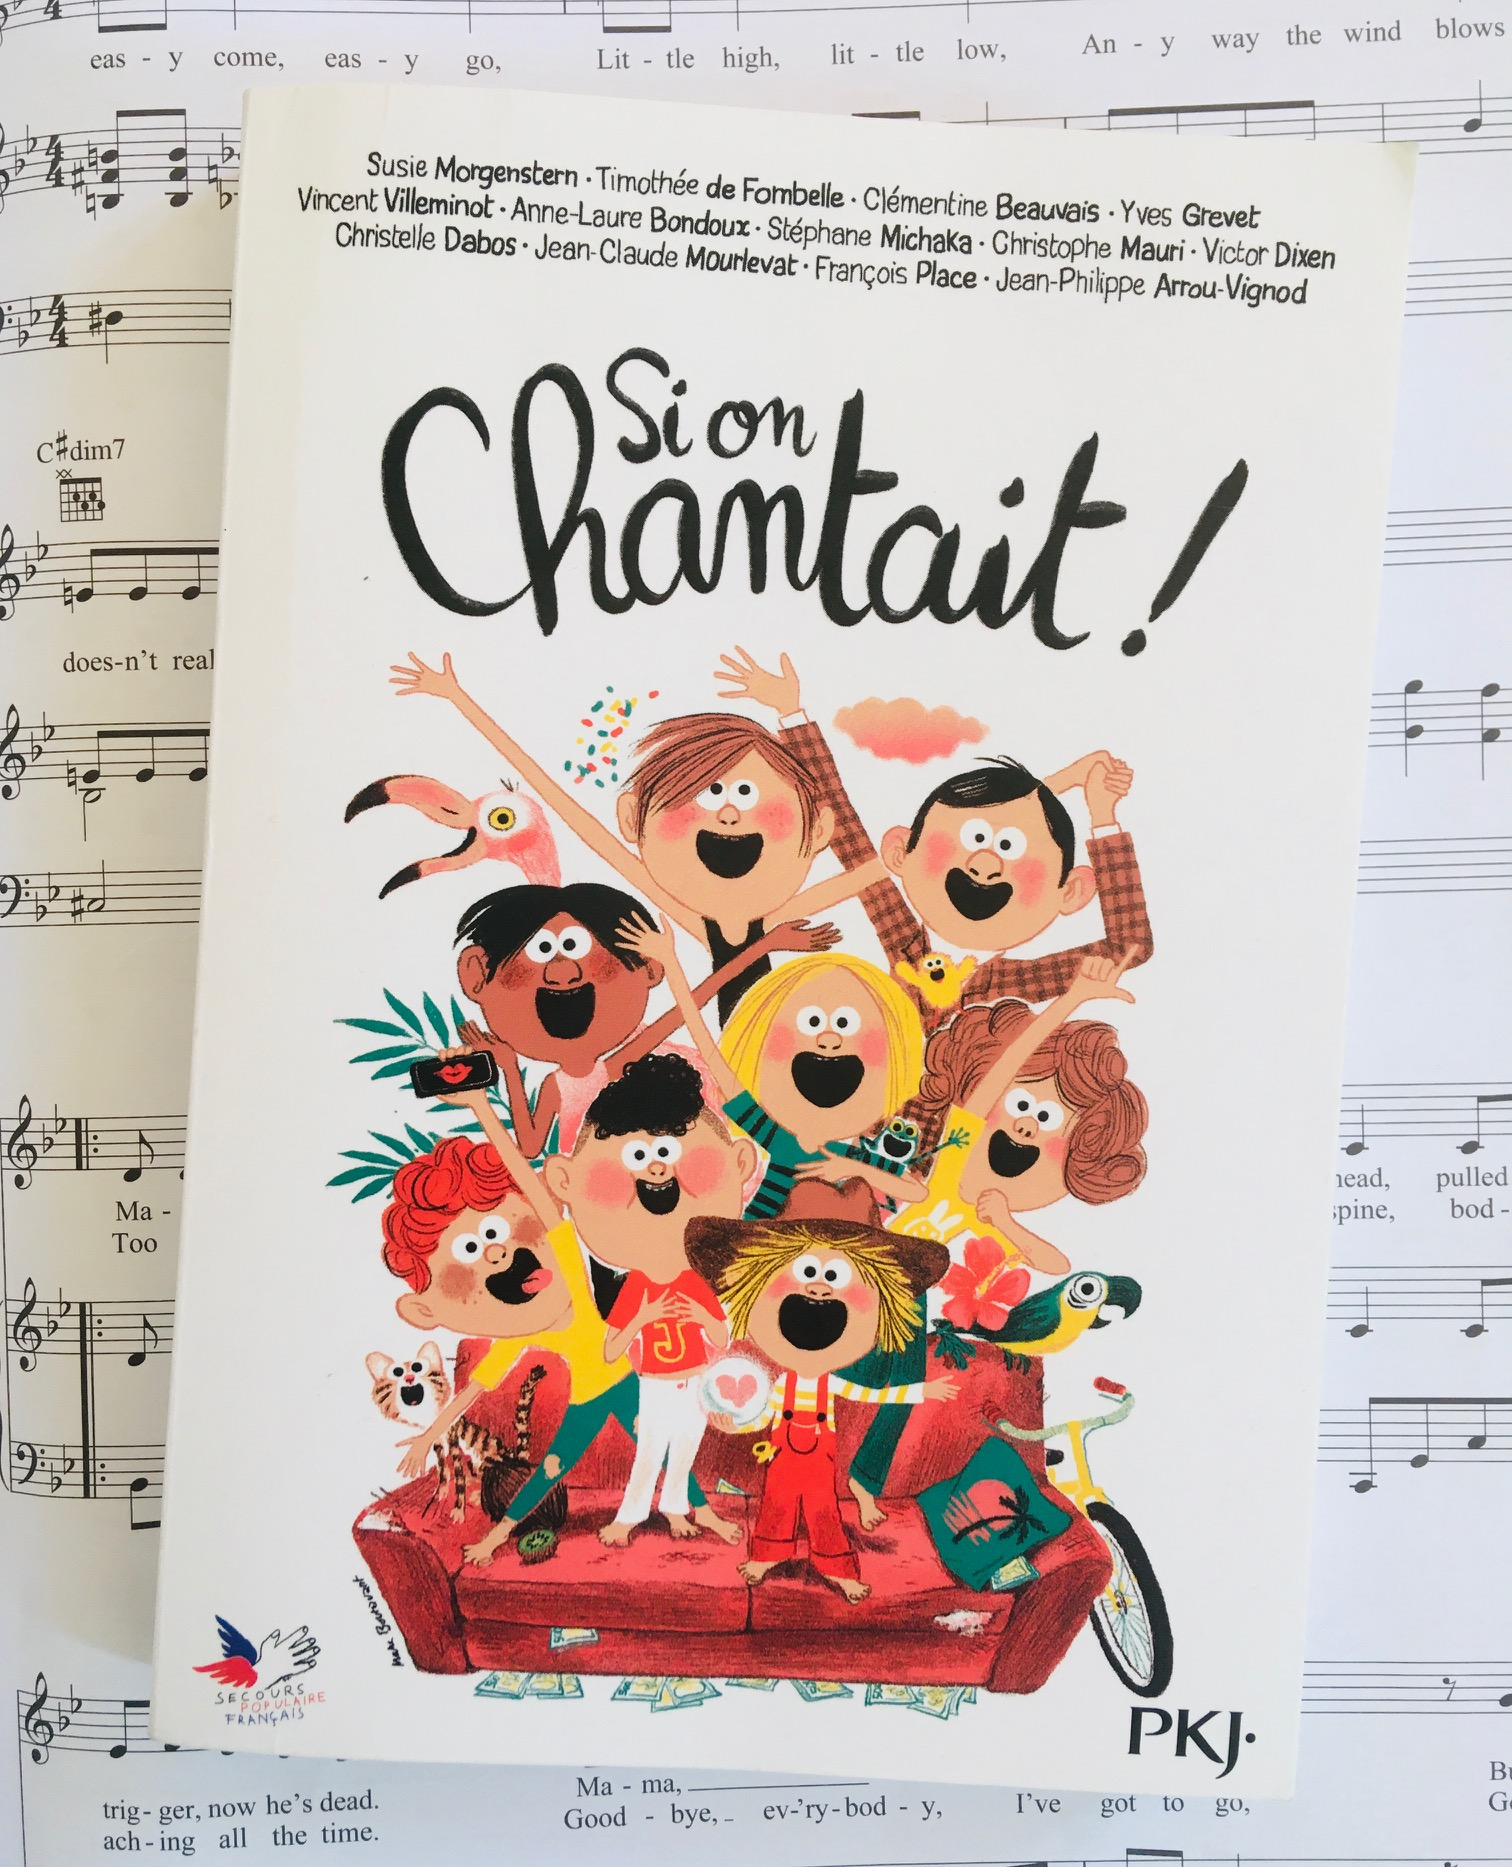 Si on chantait ! couv